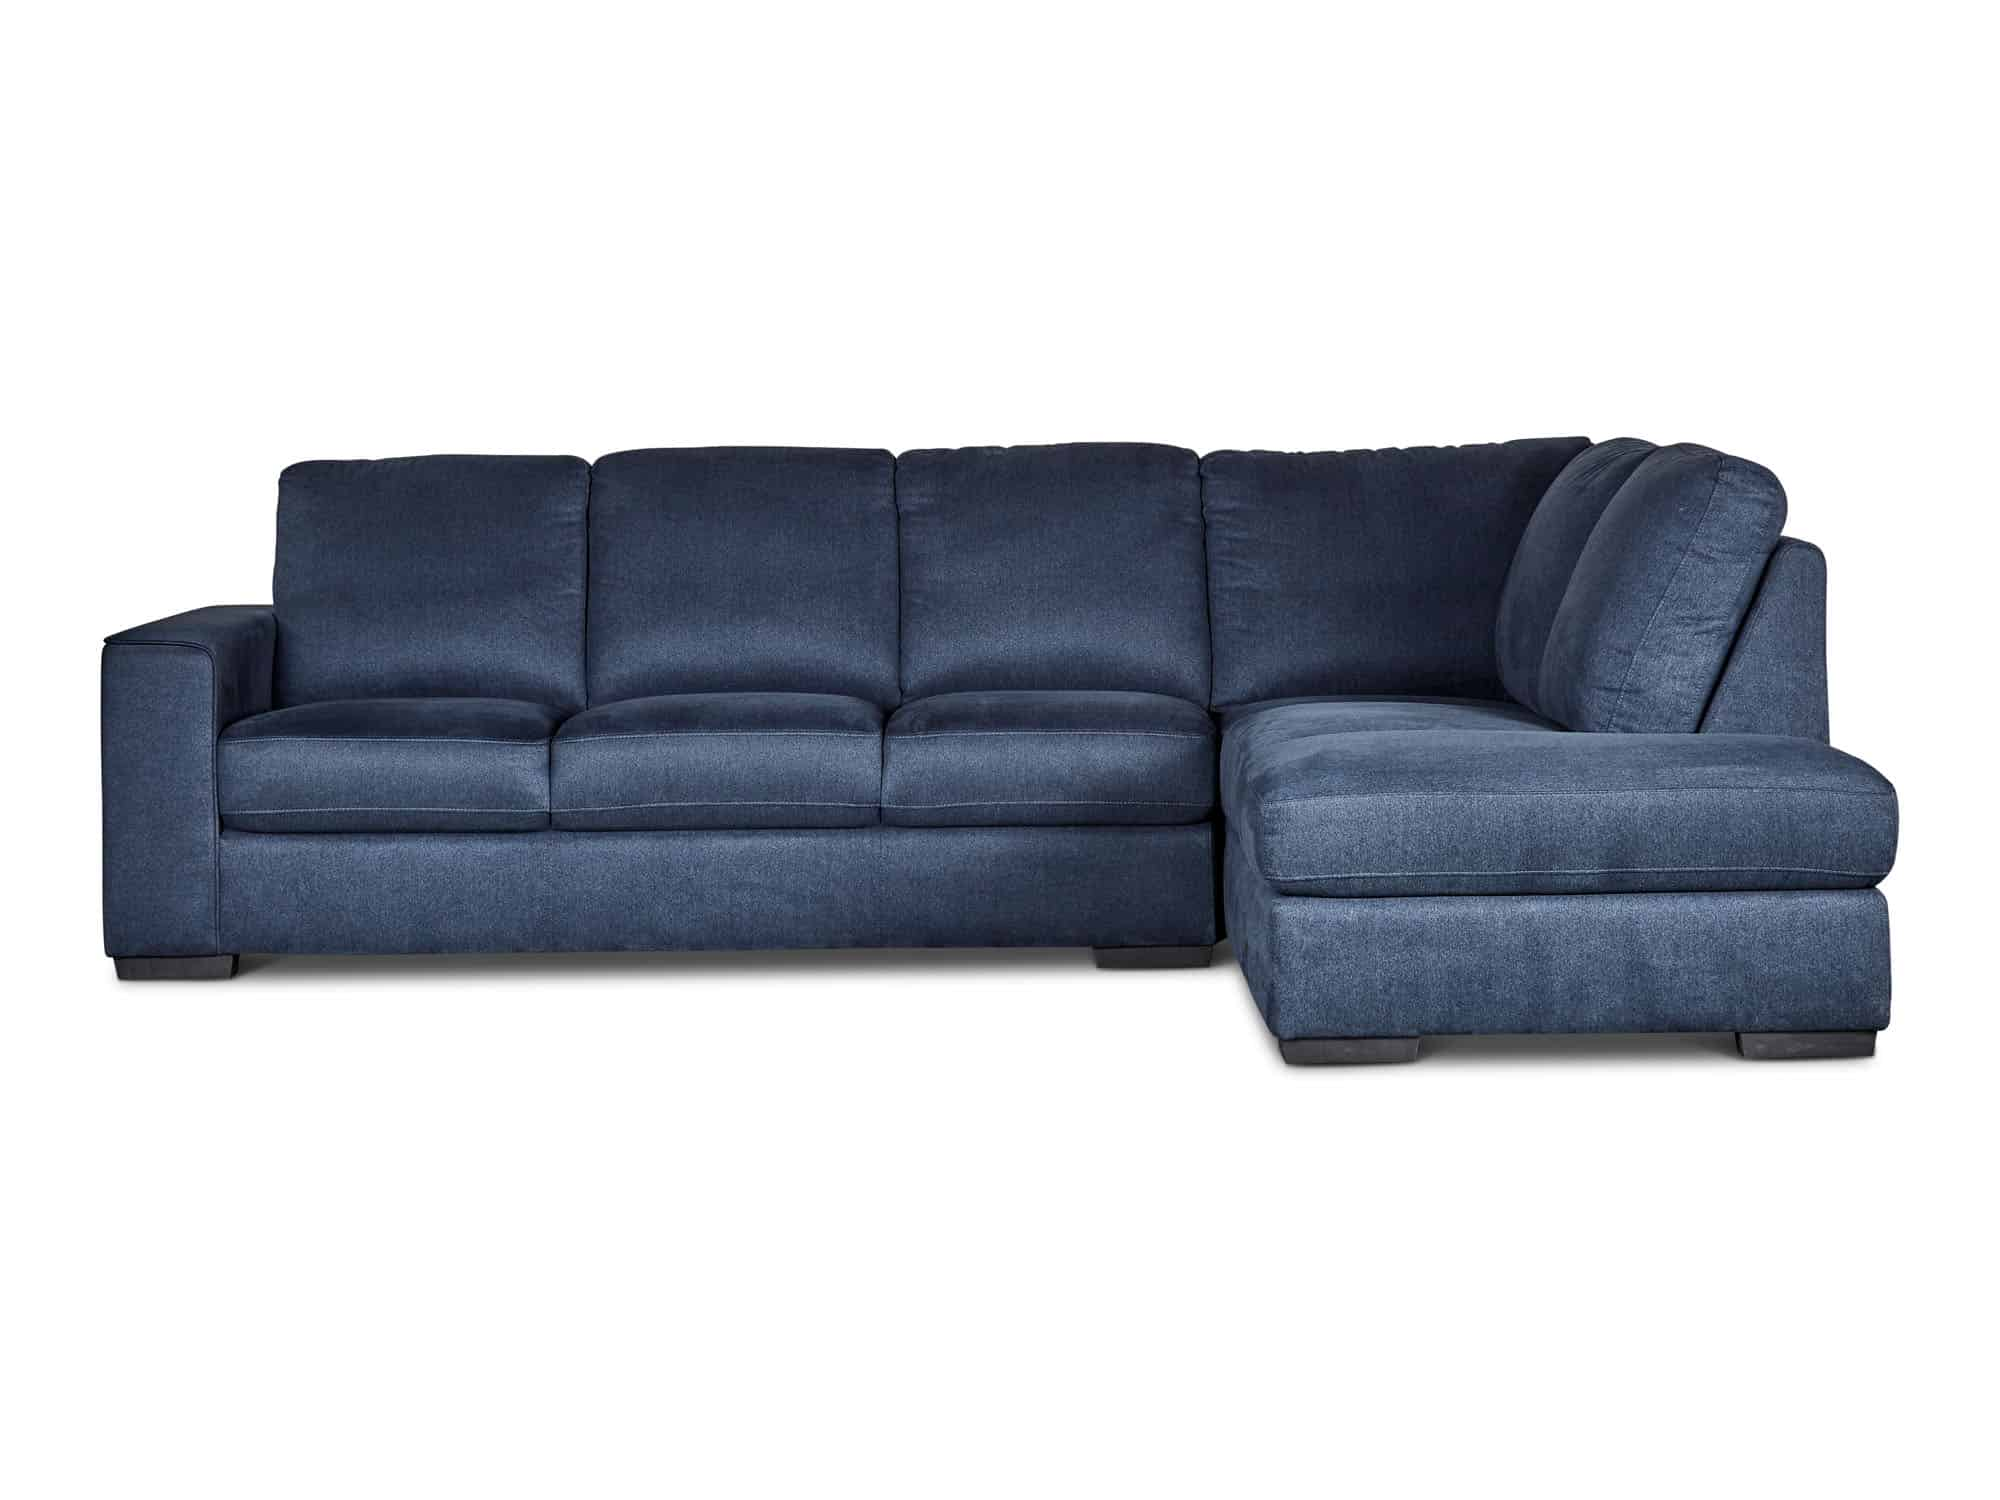 Focus On Furniture Sofa Bed Leather Modular Lounge With Sofa Bed Brokeasshome